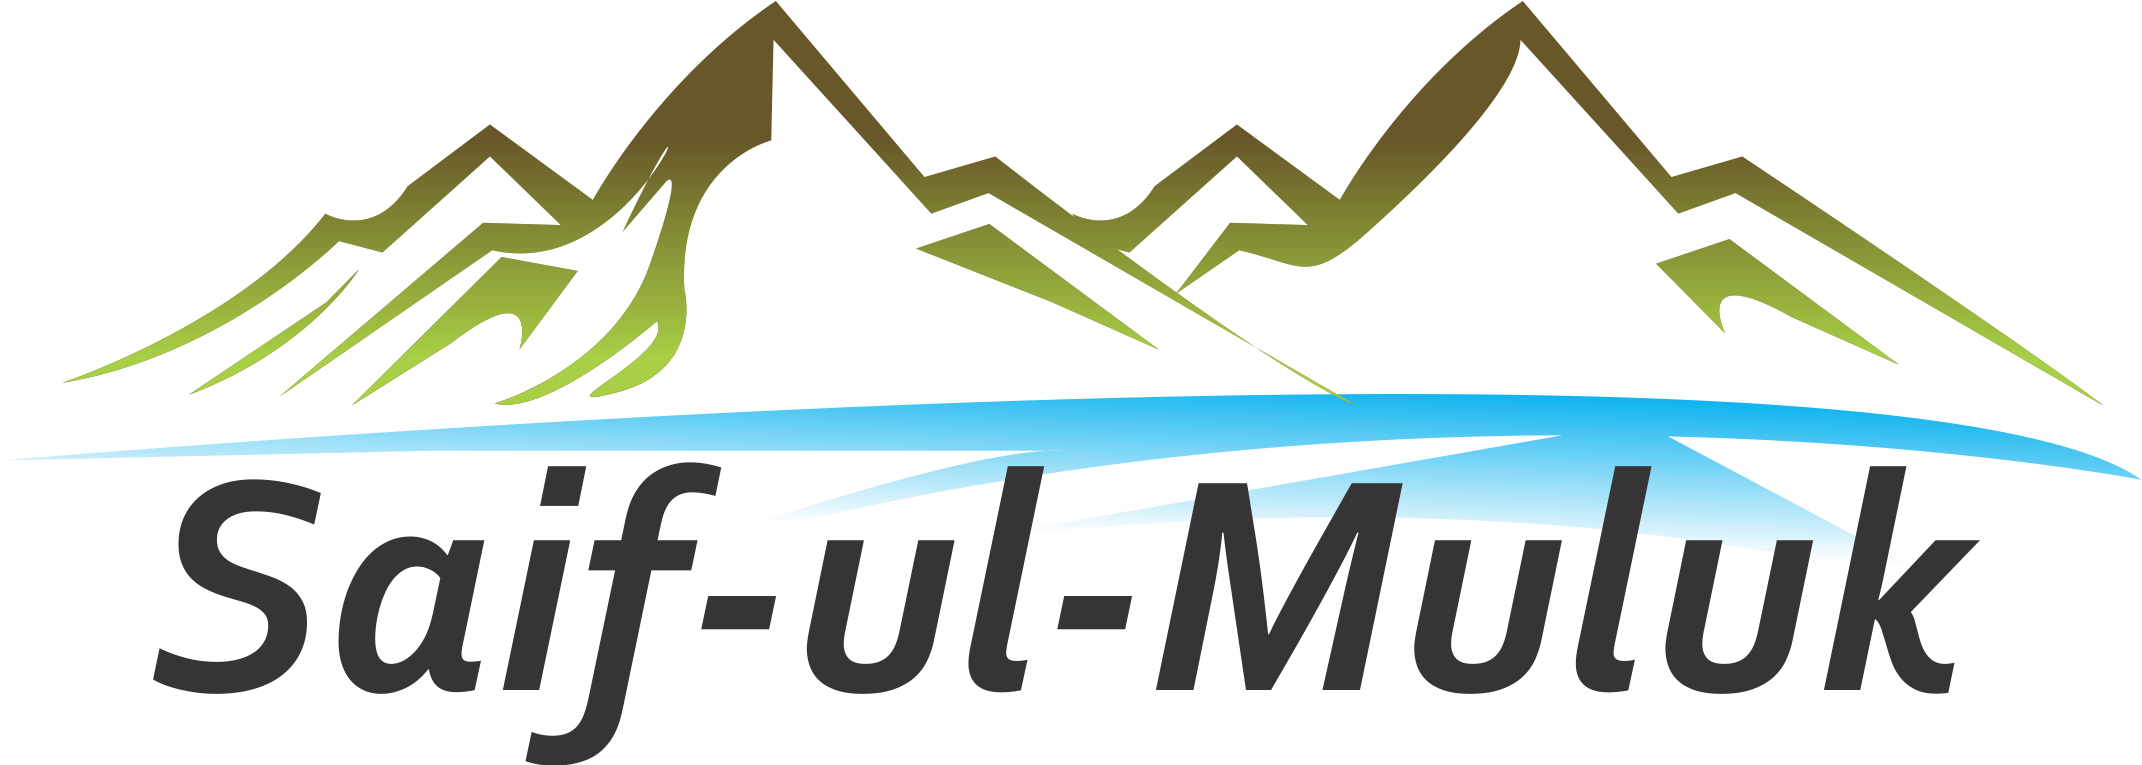 SaifulMuluk Tour and Travel Company | Saif-Ul-Muluk | Under construction - SaifulMuluk Tour and Travel Company | Saif-Ul-Muluk